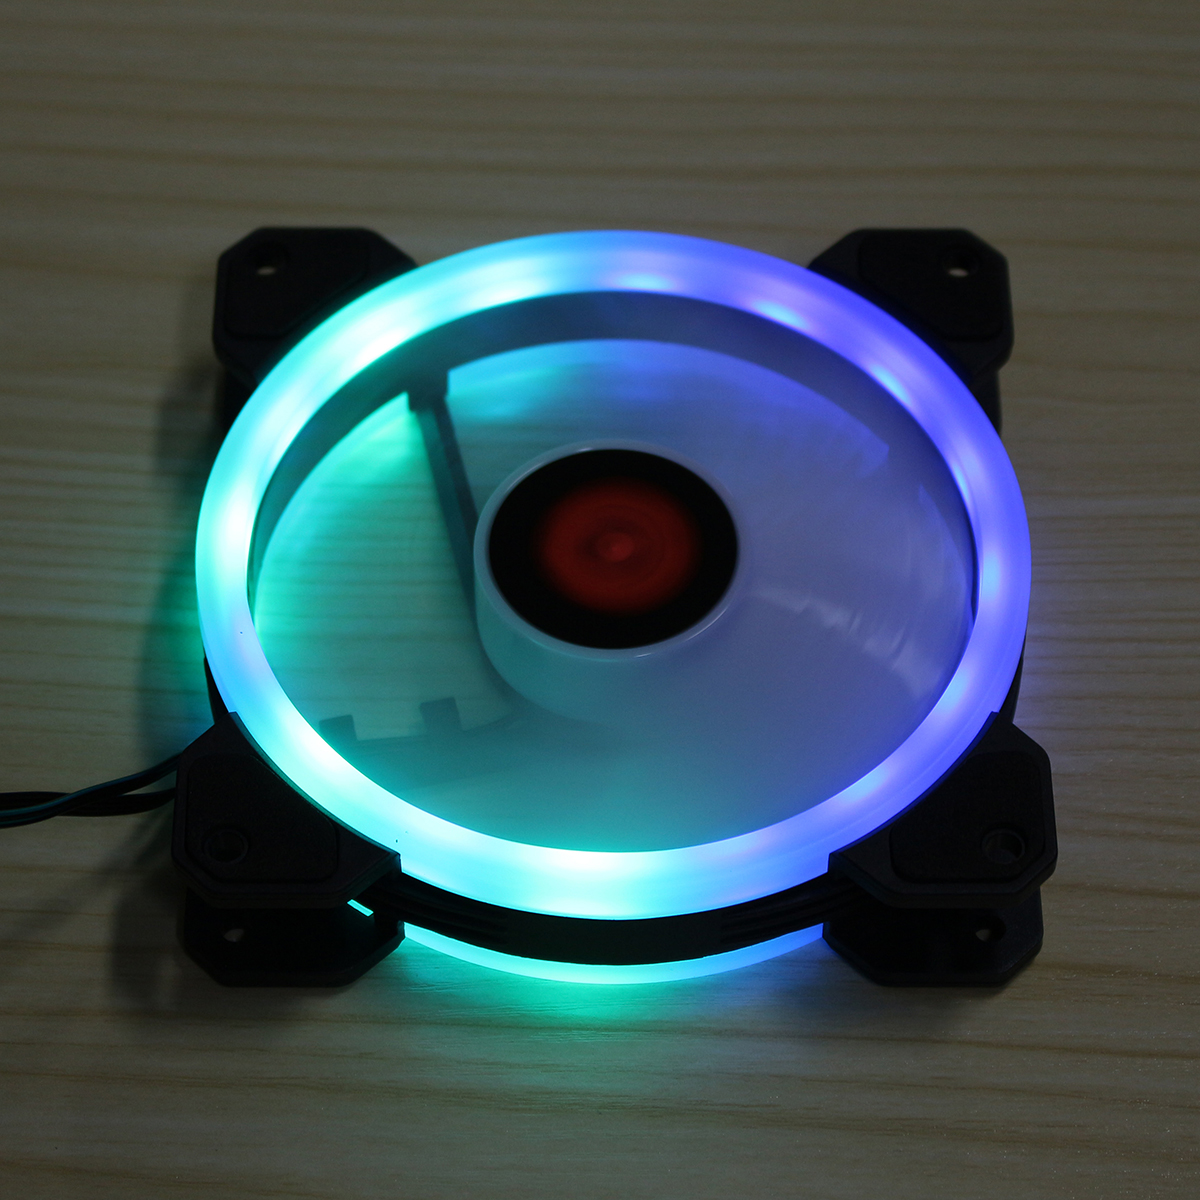 Coolmoon 1PCS 120mm Adjustable RGB LED Light Computer PC Case Cooling Fan